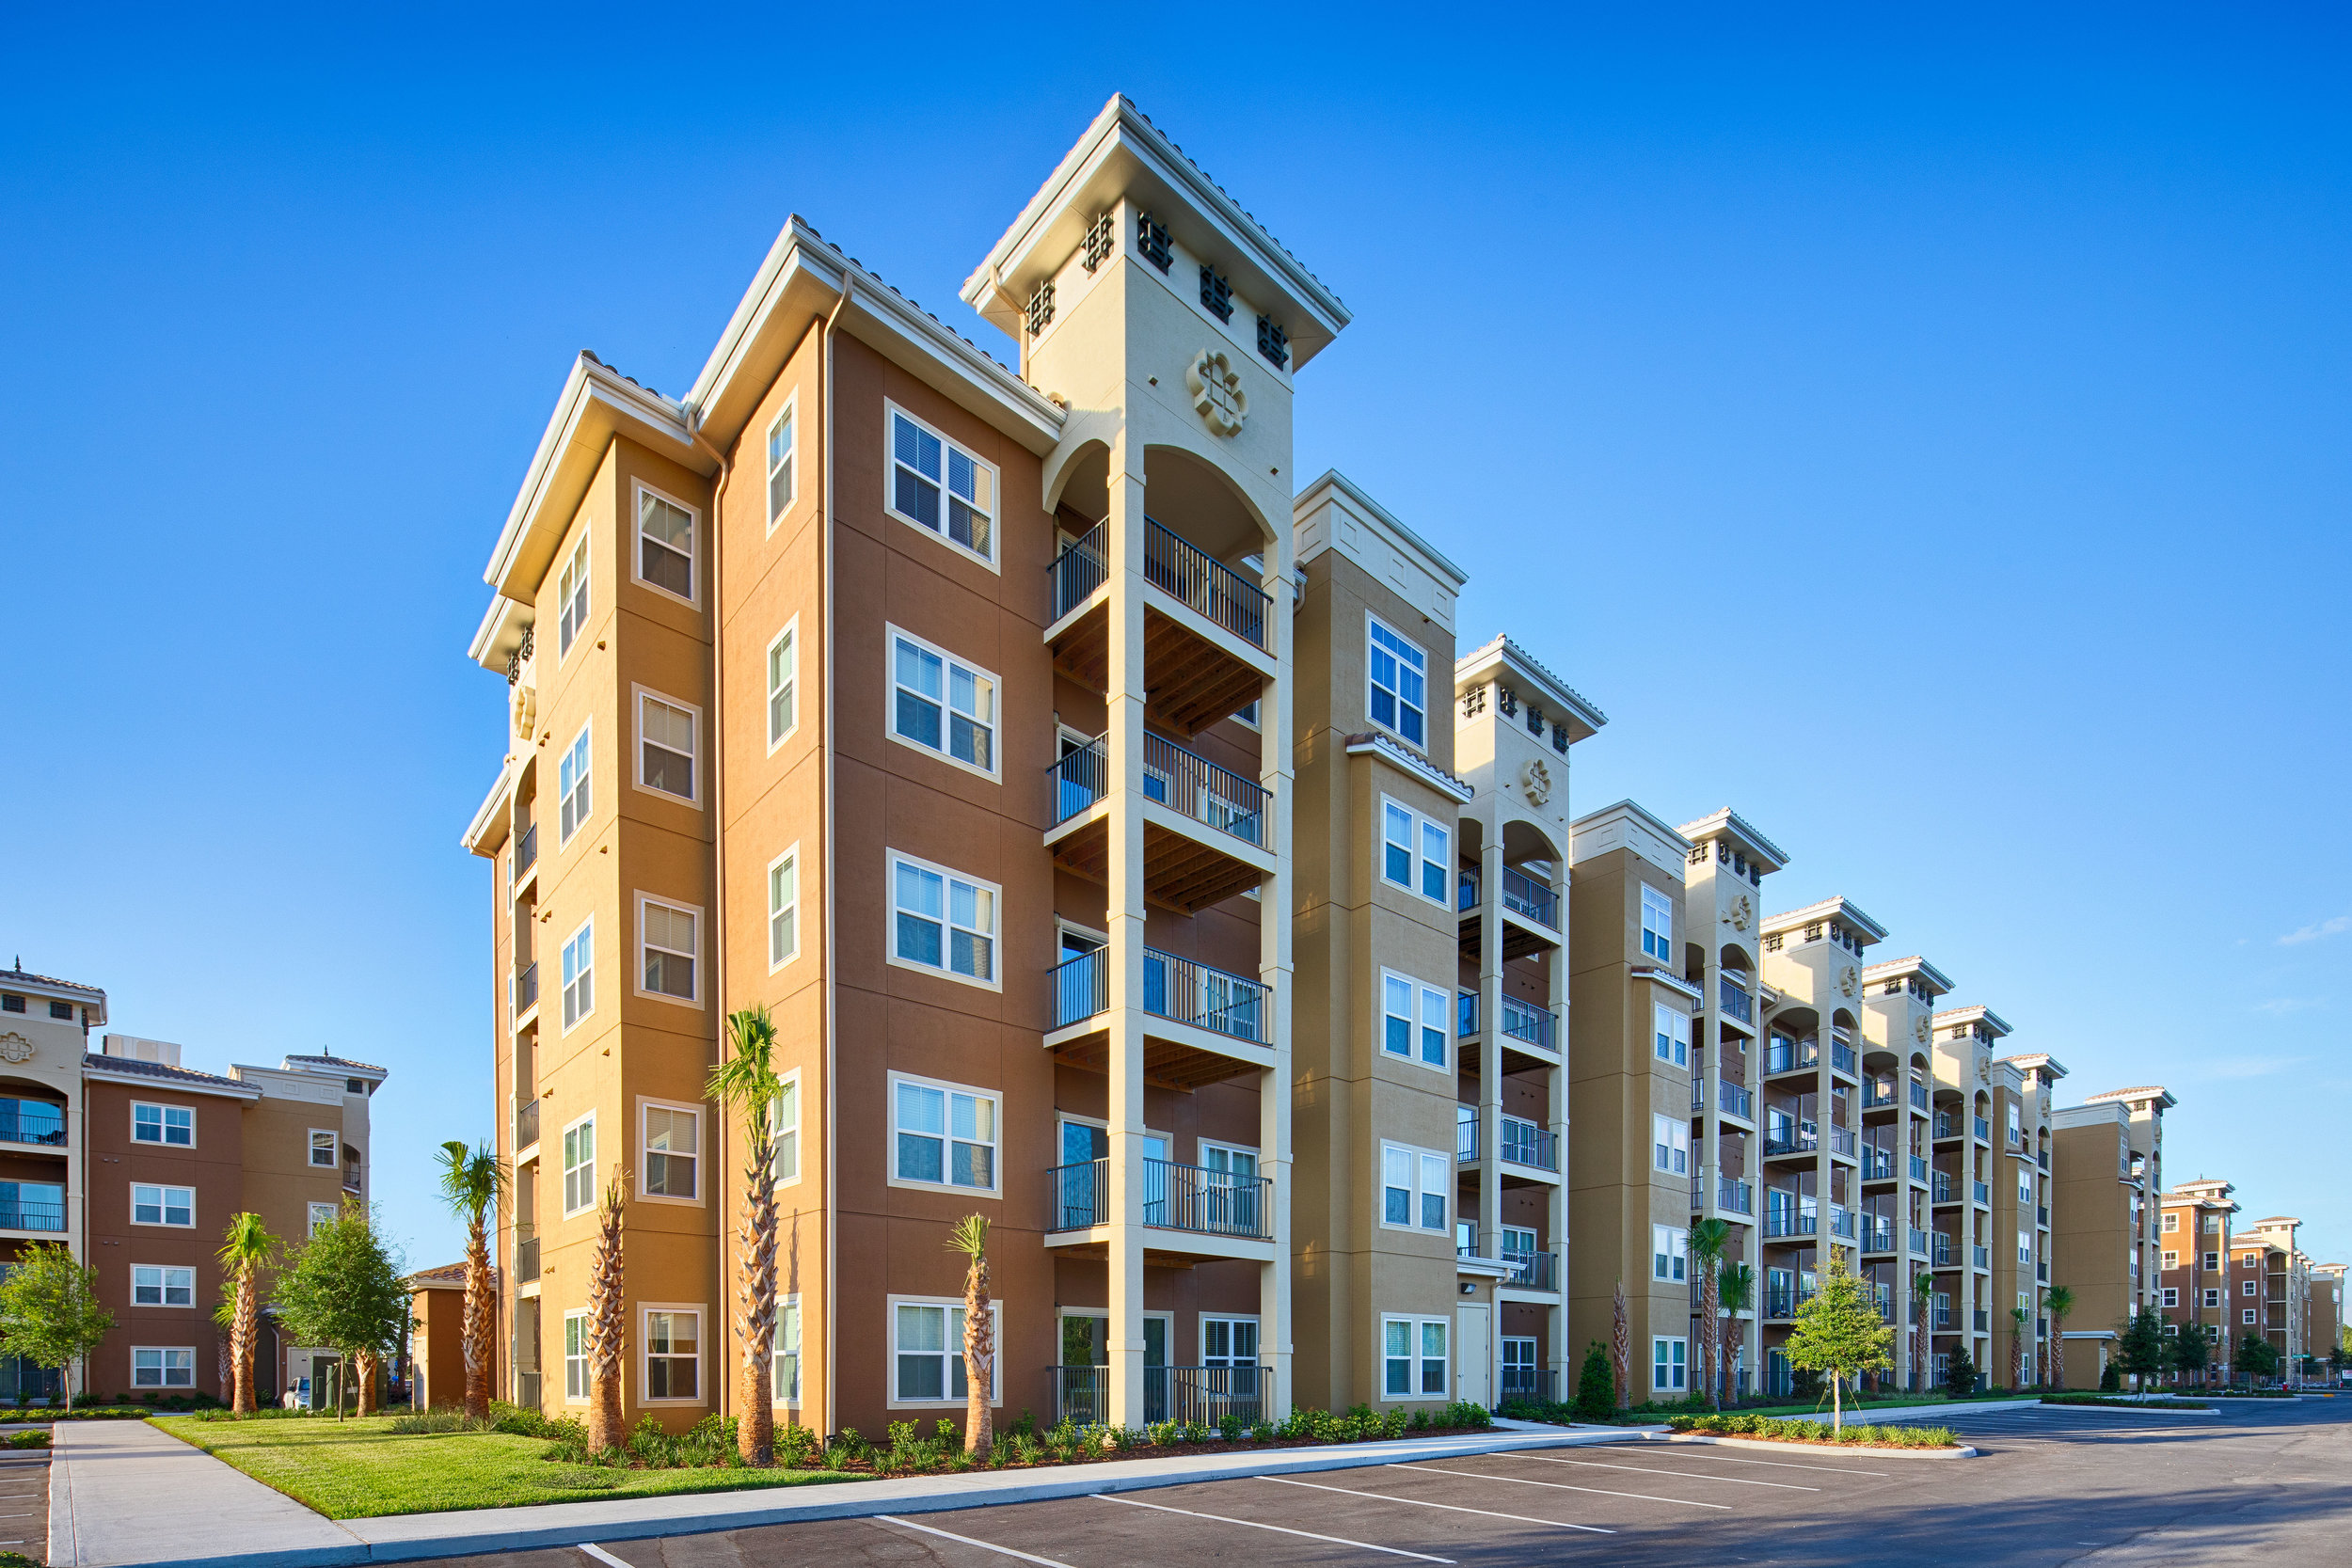 GateApartments_063.jpg